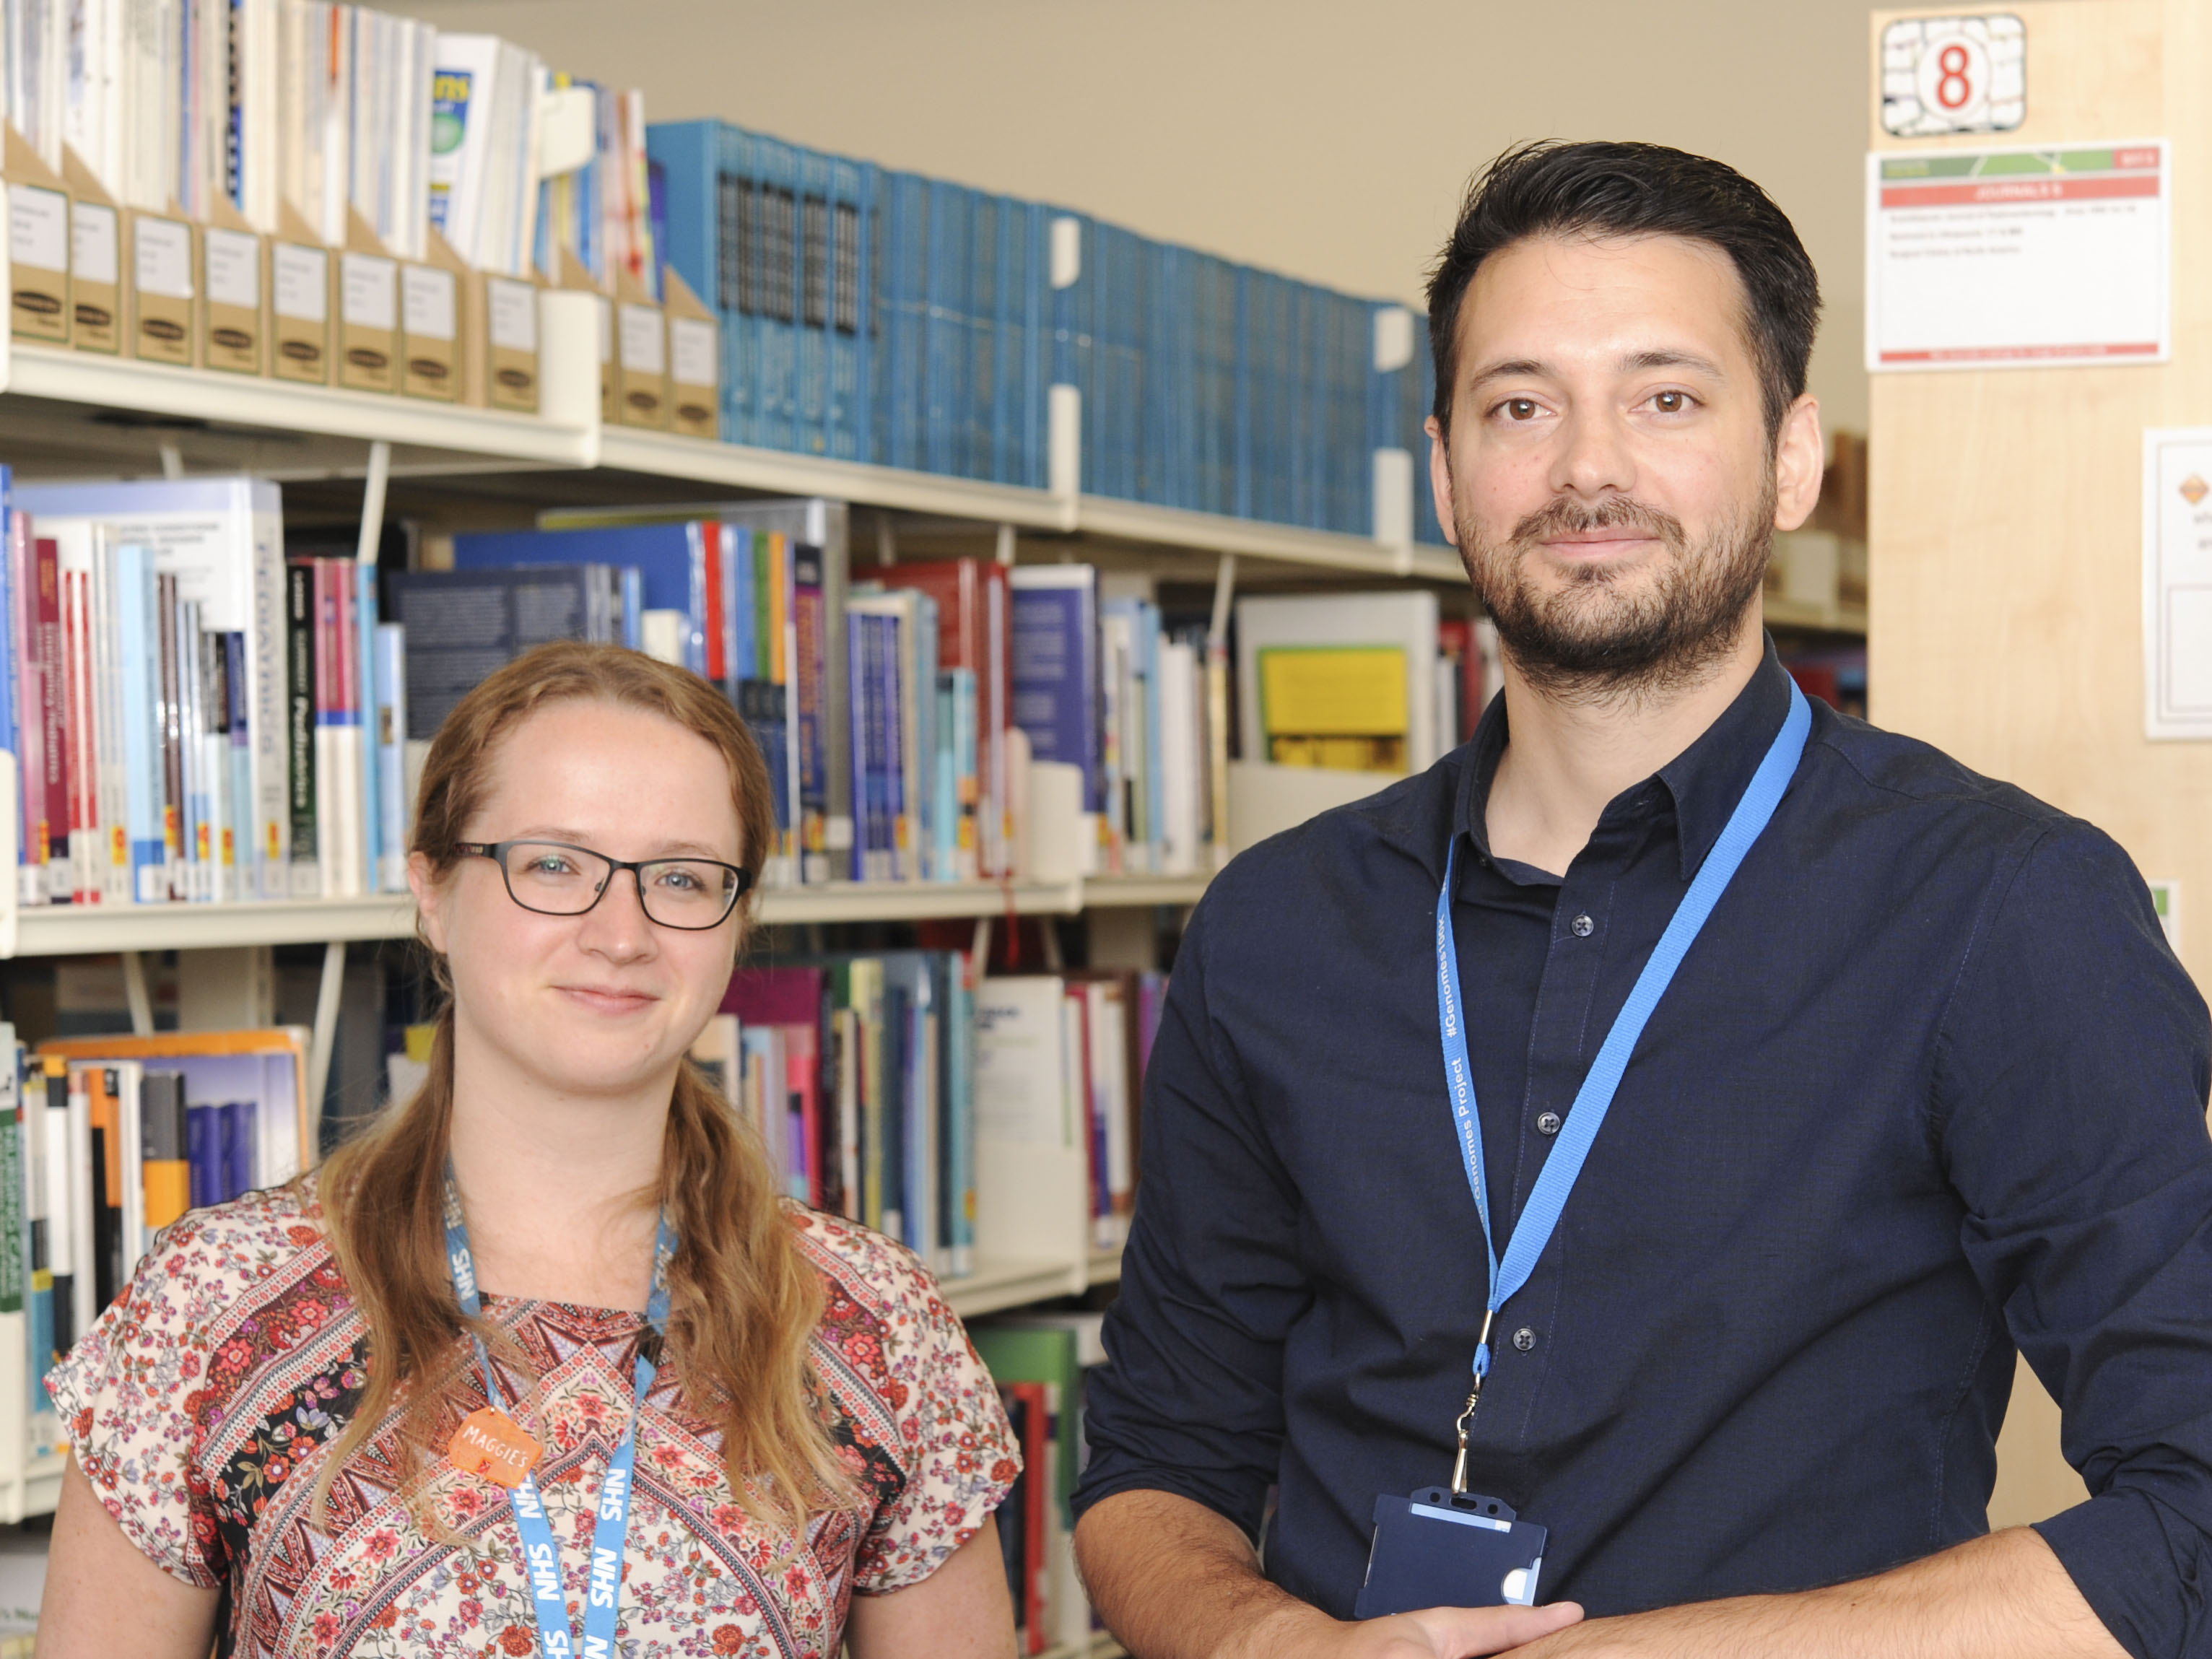 Rebecca and Aaron explain their role as a Clinical Librarian at the Trust